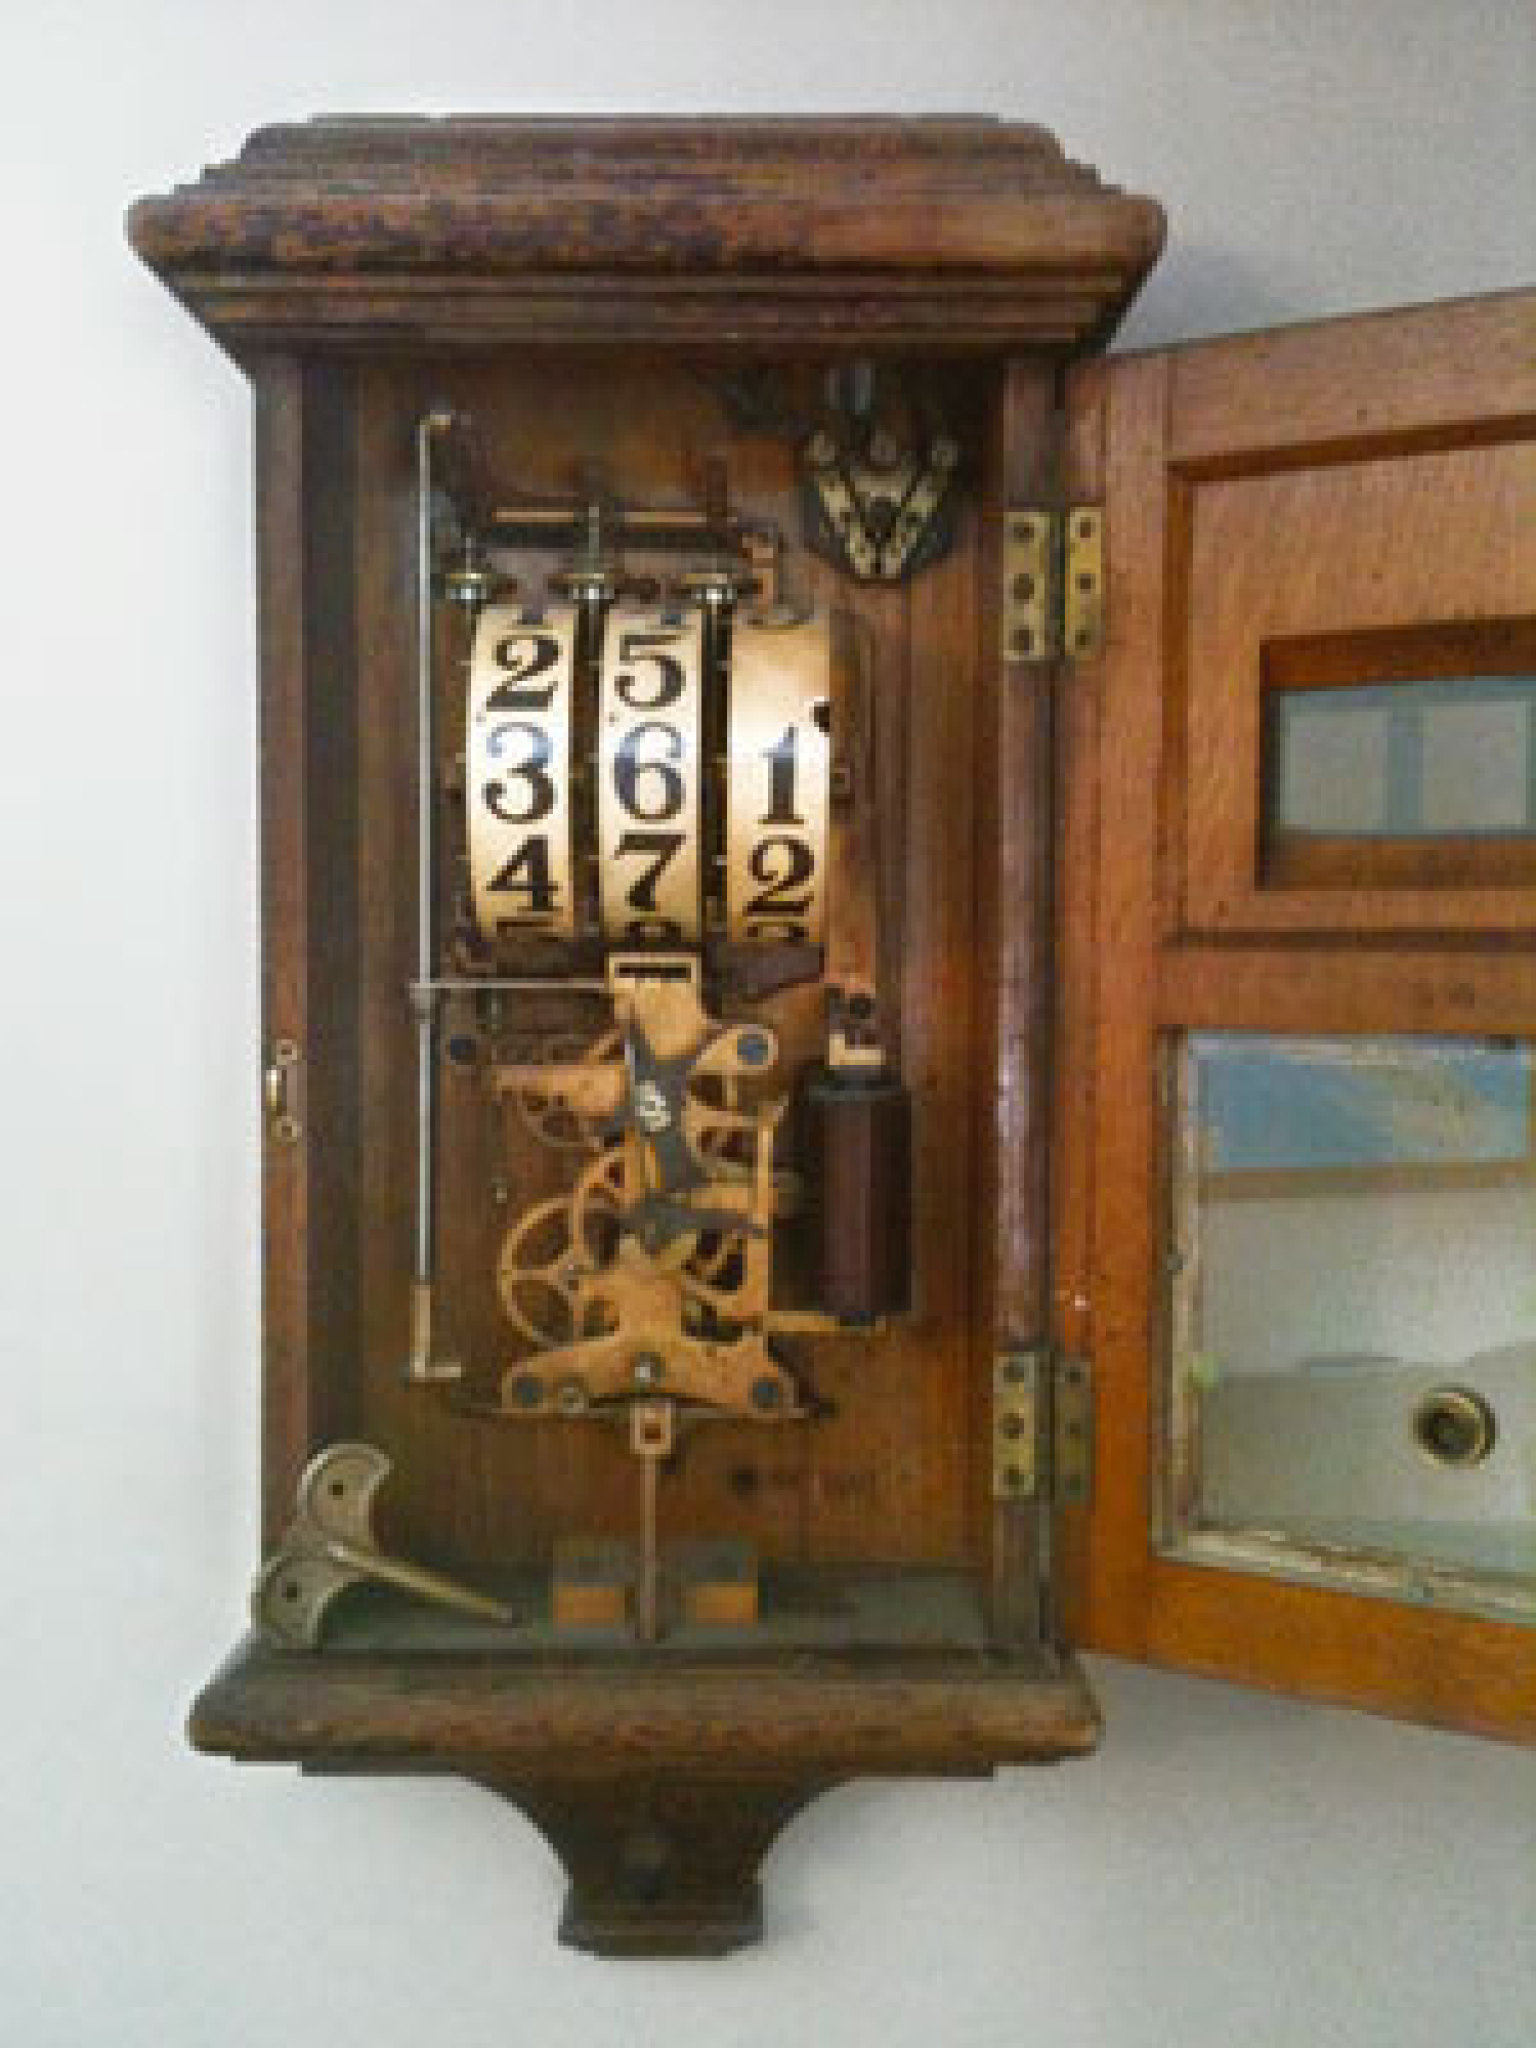 Whats It Worth >> Country Living Appraises Late-19th-Century Fire-Alarm ...